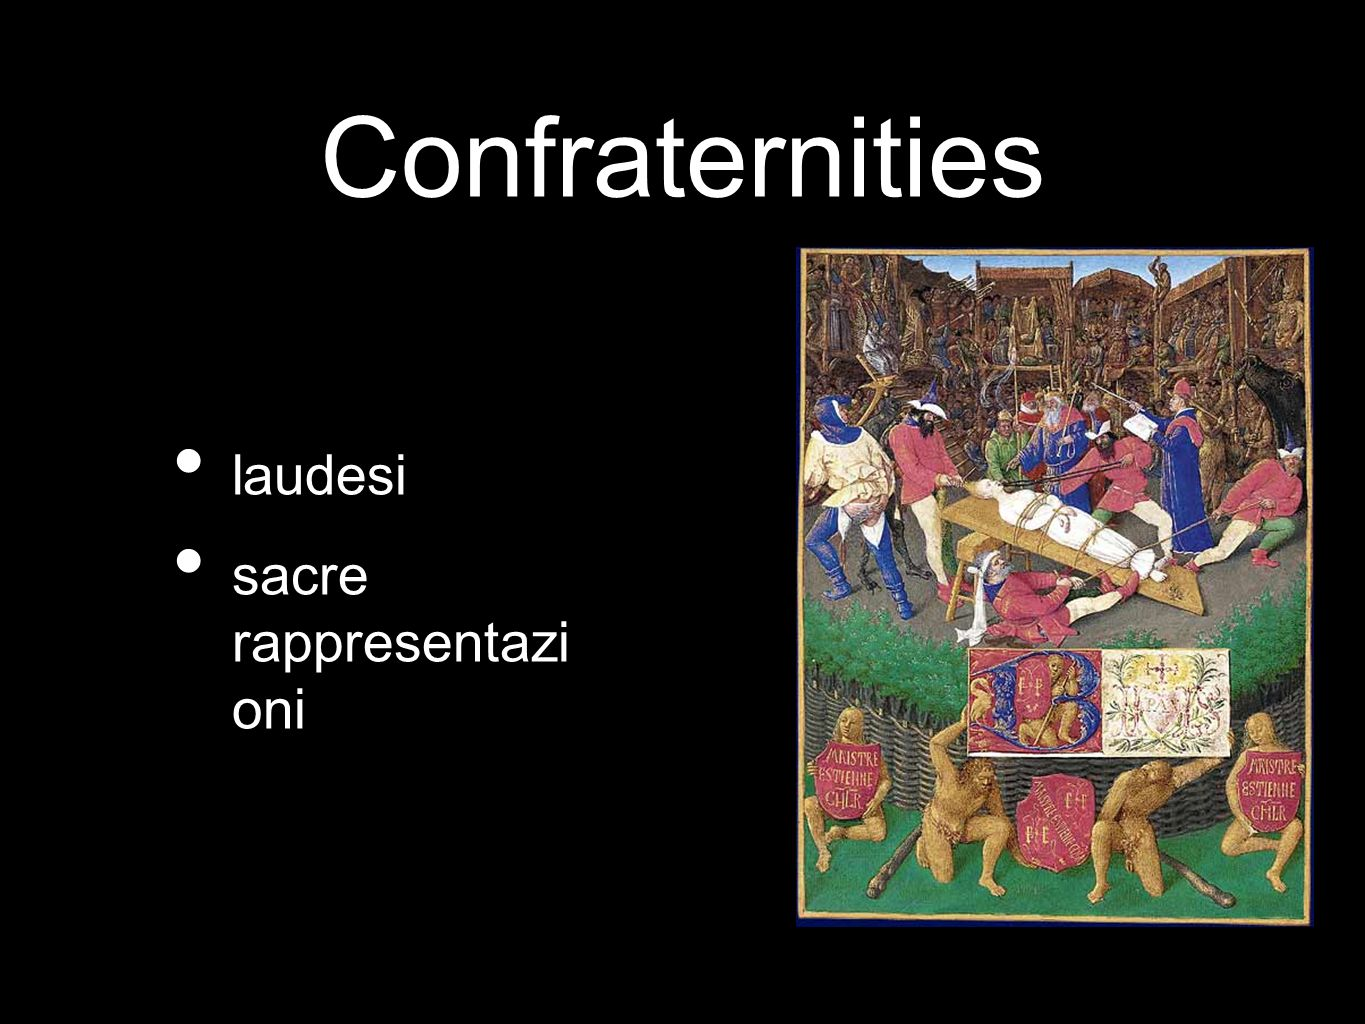 Confraternities laudesi sacre rappresentazi oni